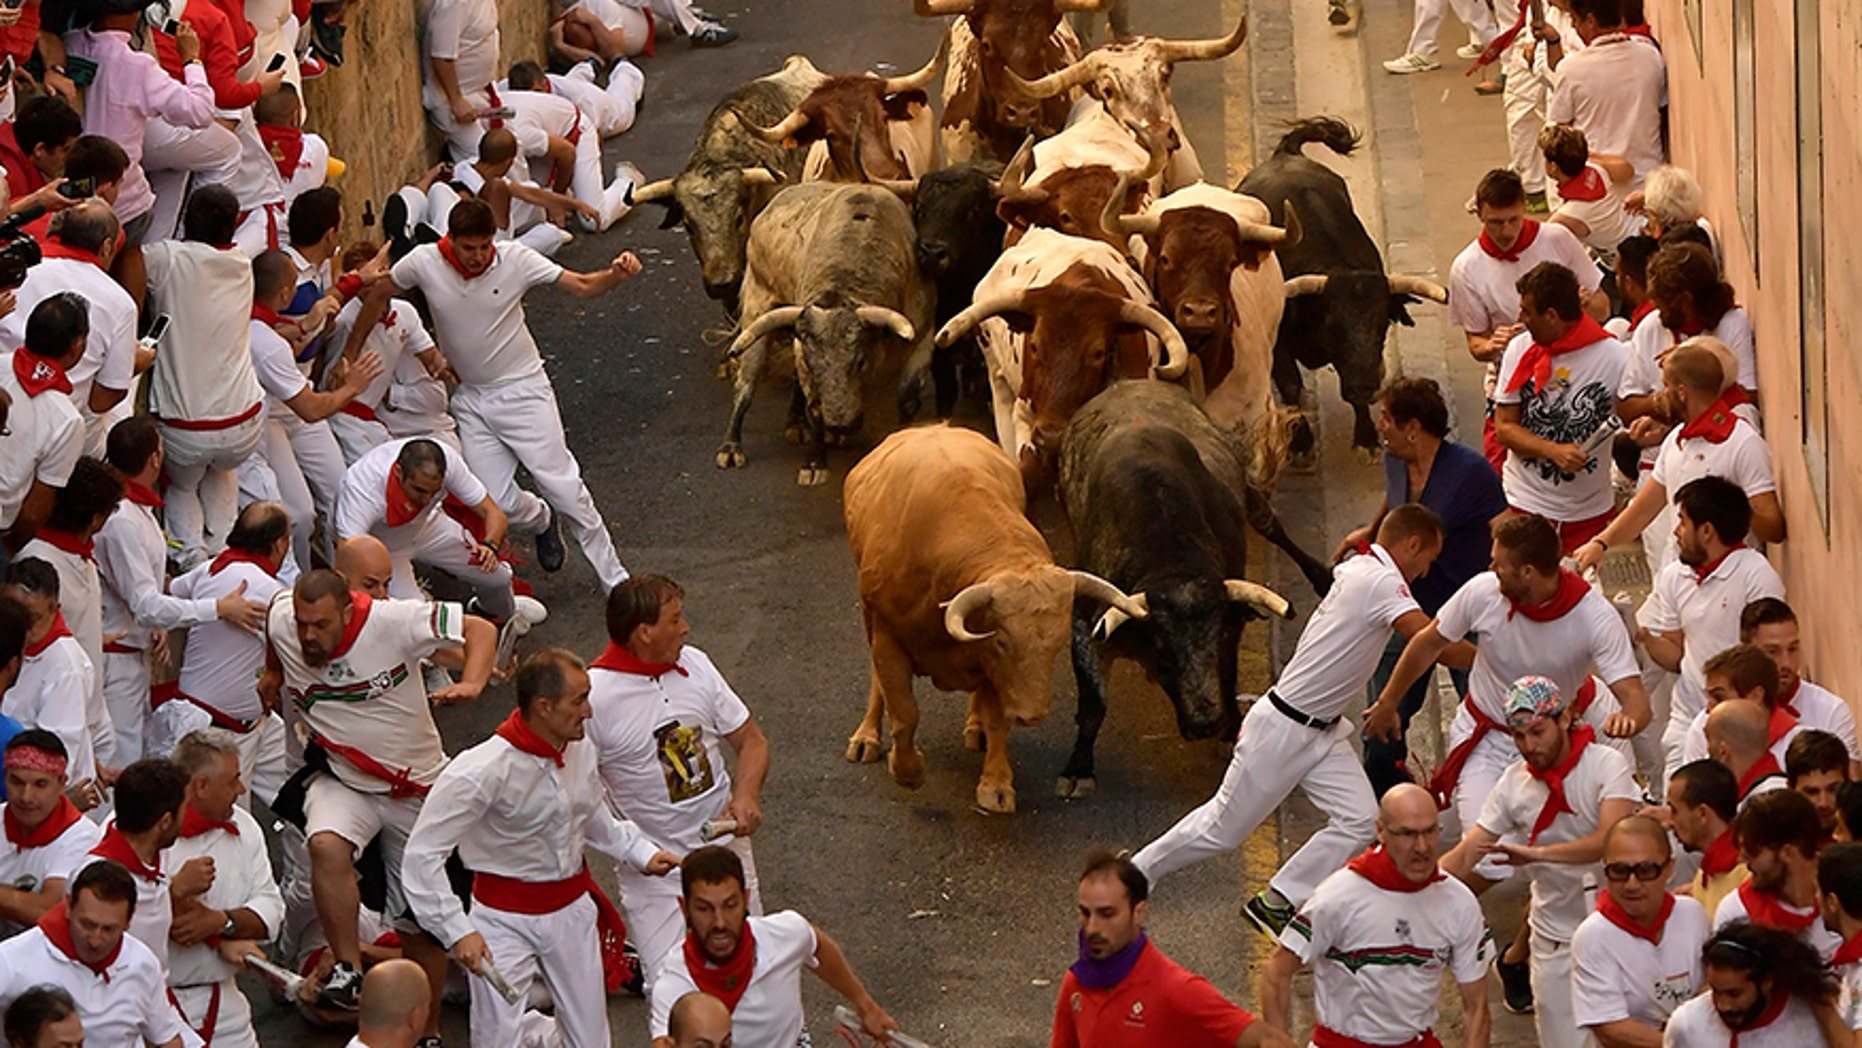 Revellers run in front of Cebada Gago fighting bulls during the first running of the bulls at the San Fermin Festival, in Pamplona, northern Spain, Friday, July 7, 2017.